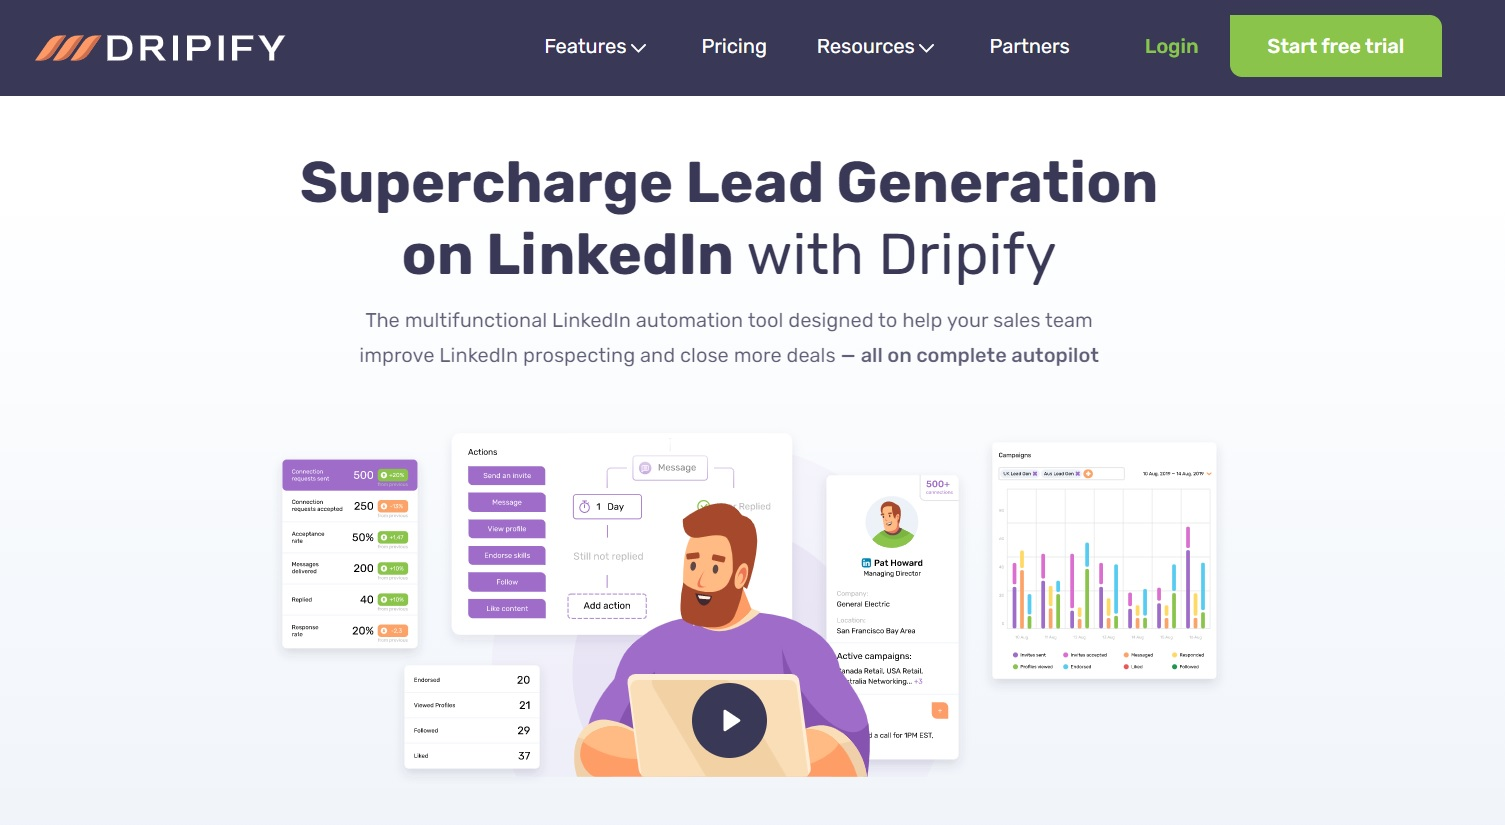 A screenshot of LinkedIn automation tool, Dripify's landing page.